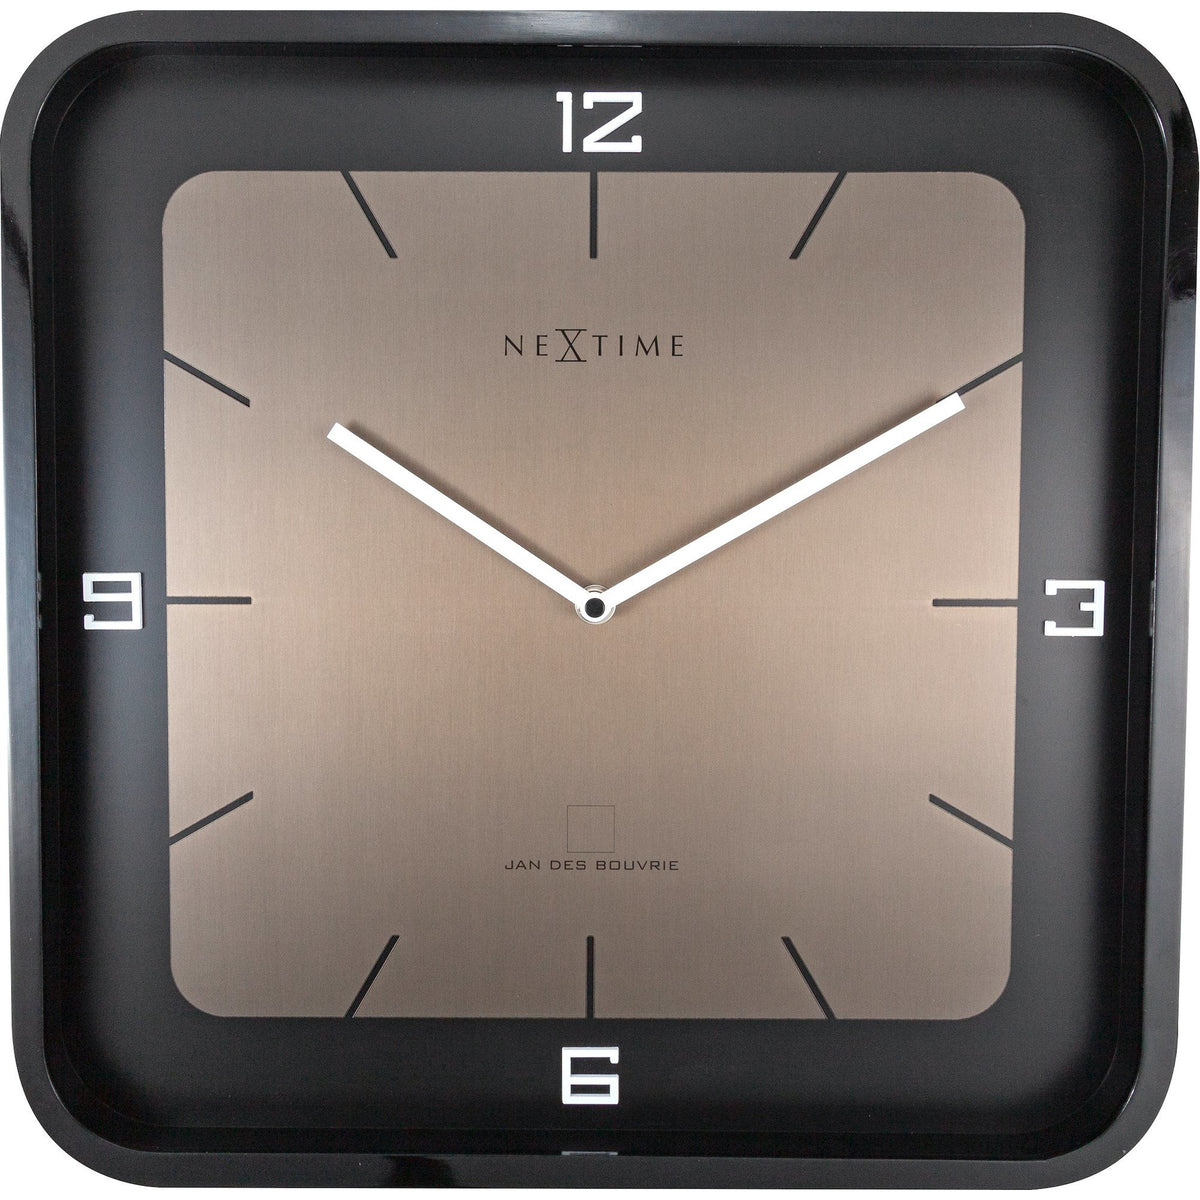 NeXtime - Wall clock - 40 x 40 x 4 cm - Wood - Black - 'Square Wall'